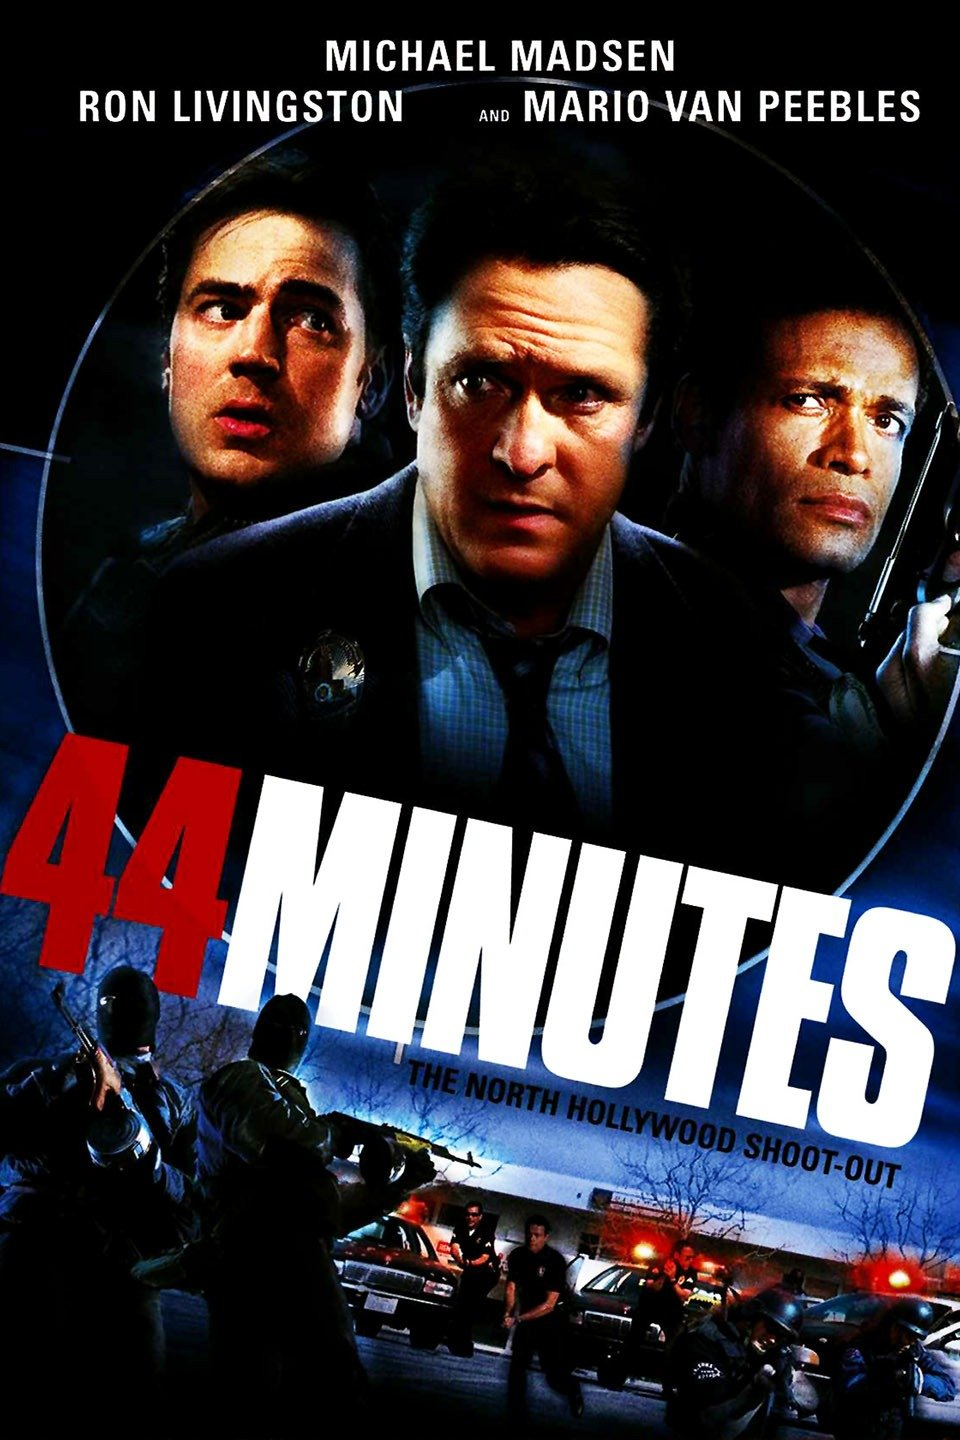 44 Minutes: The North Hollywood Shootout (2003)